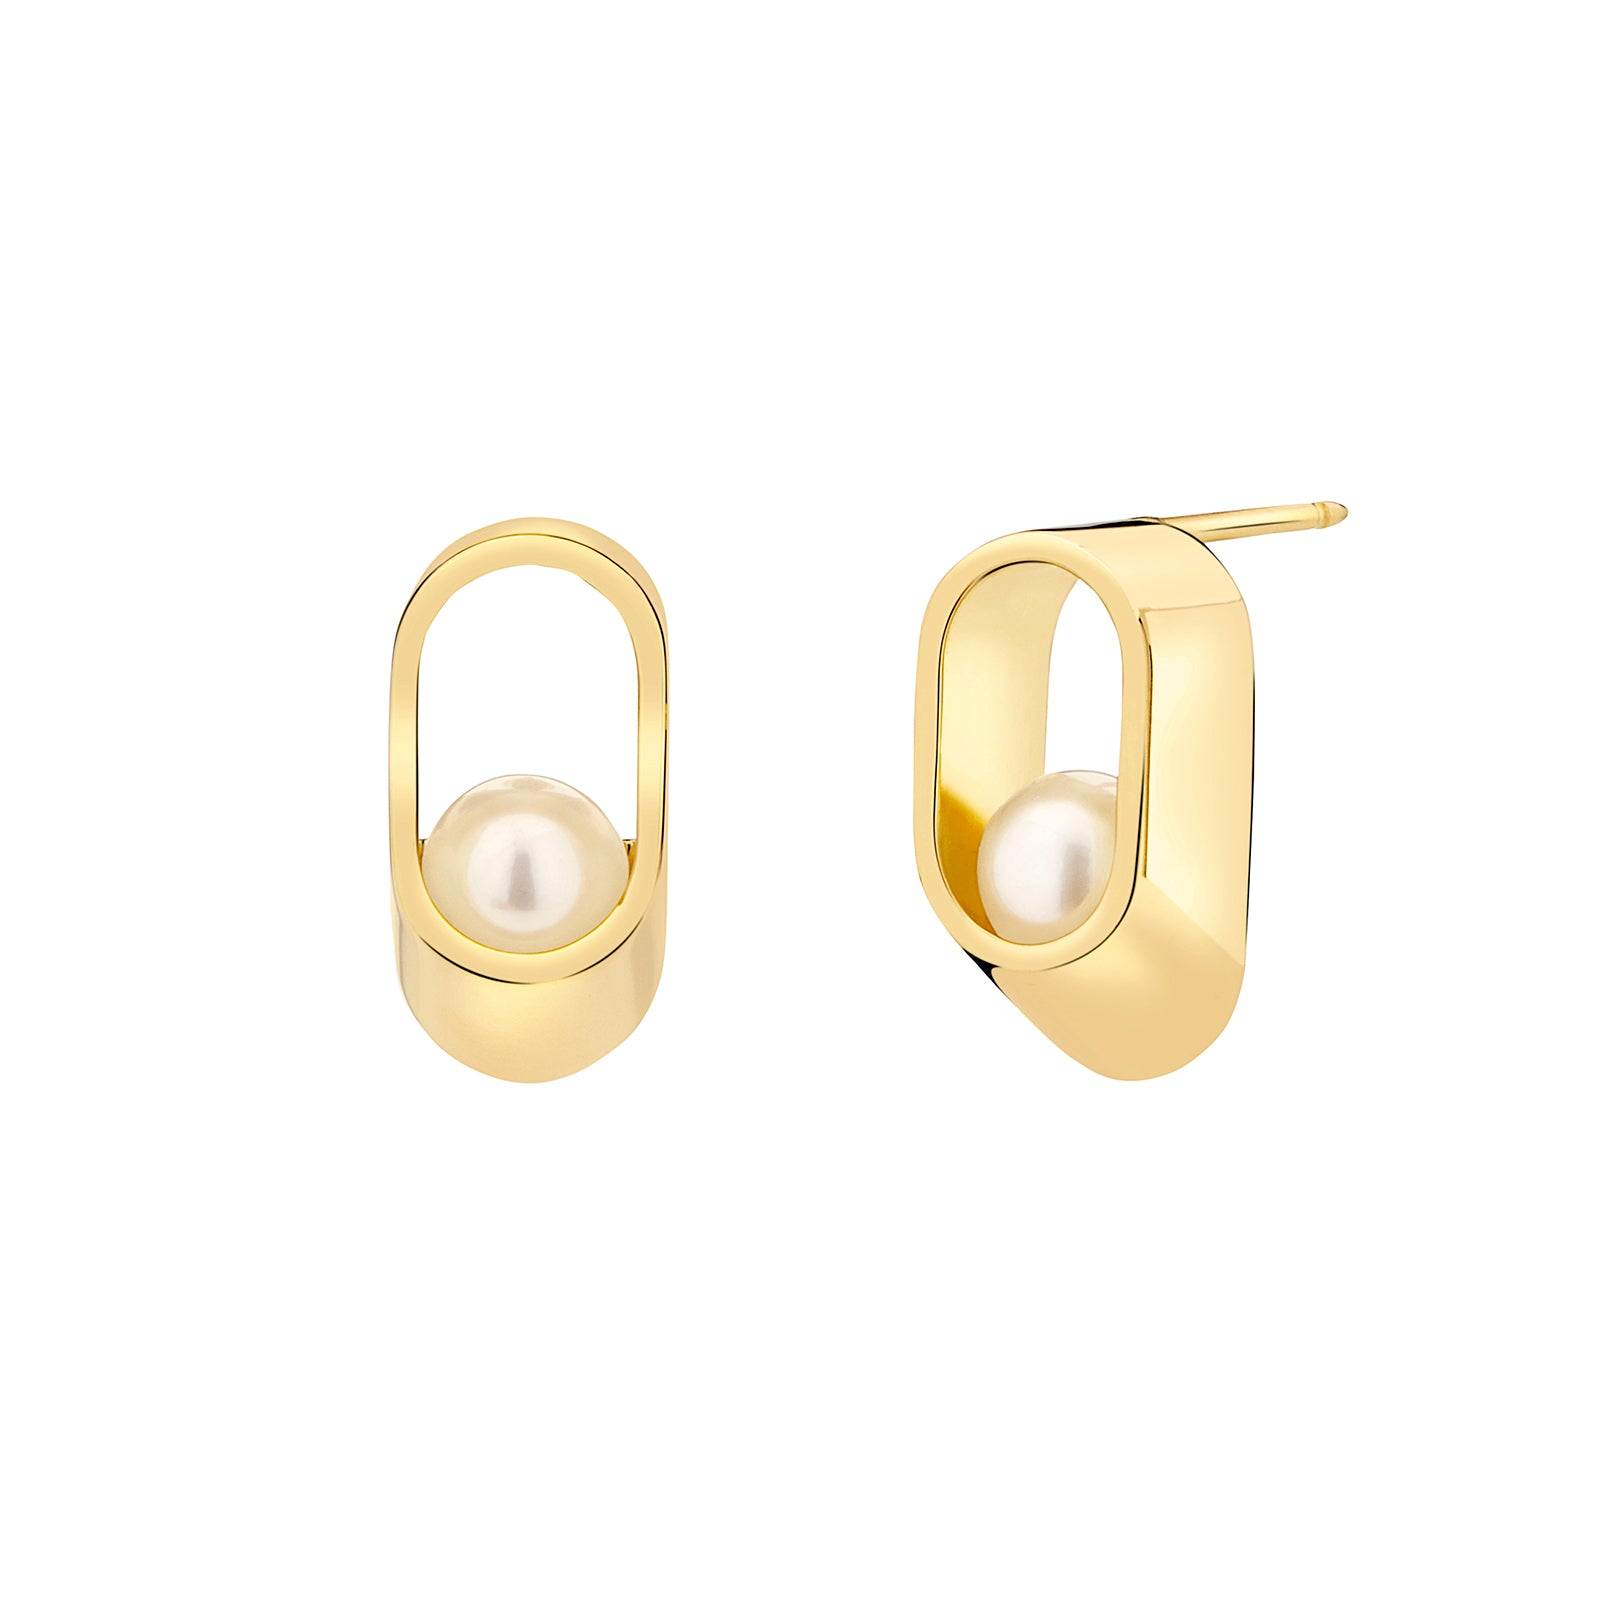 Yael Sonia Ellipse Earrings - Earrings - Broken English Jewelry